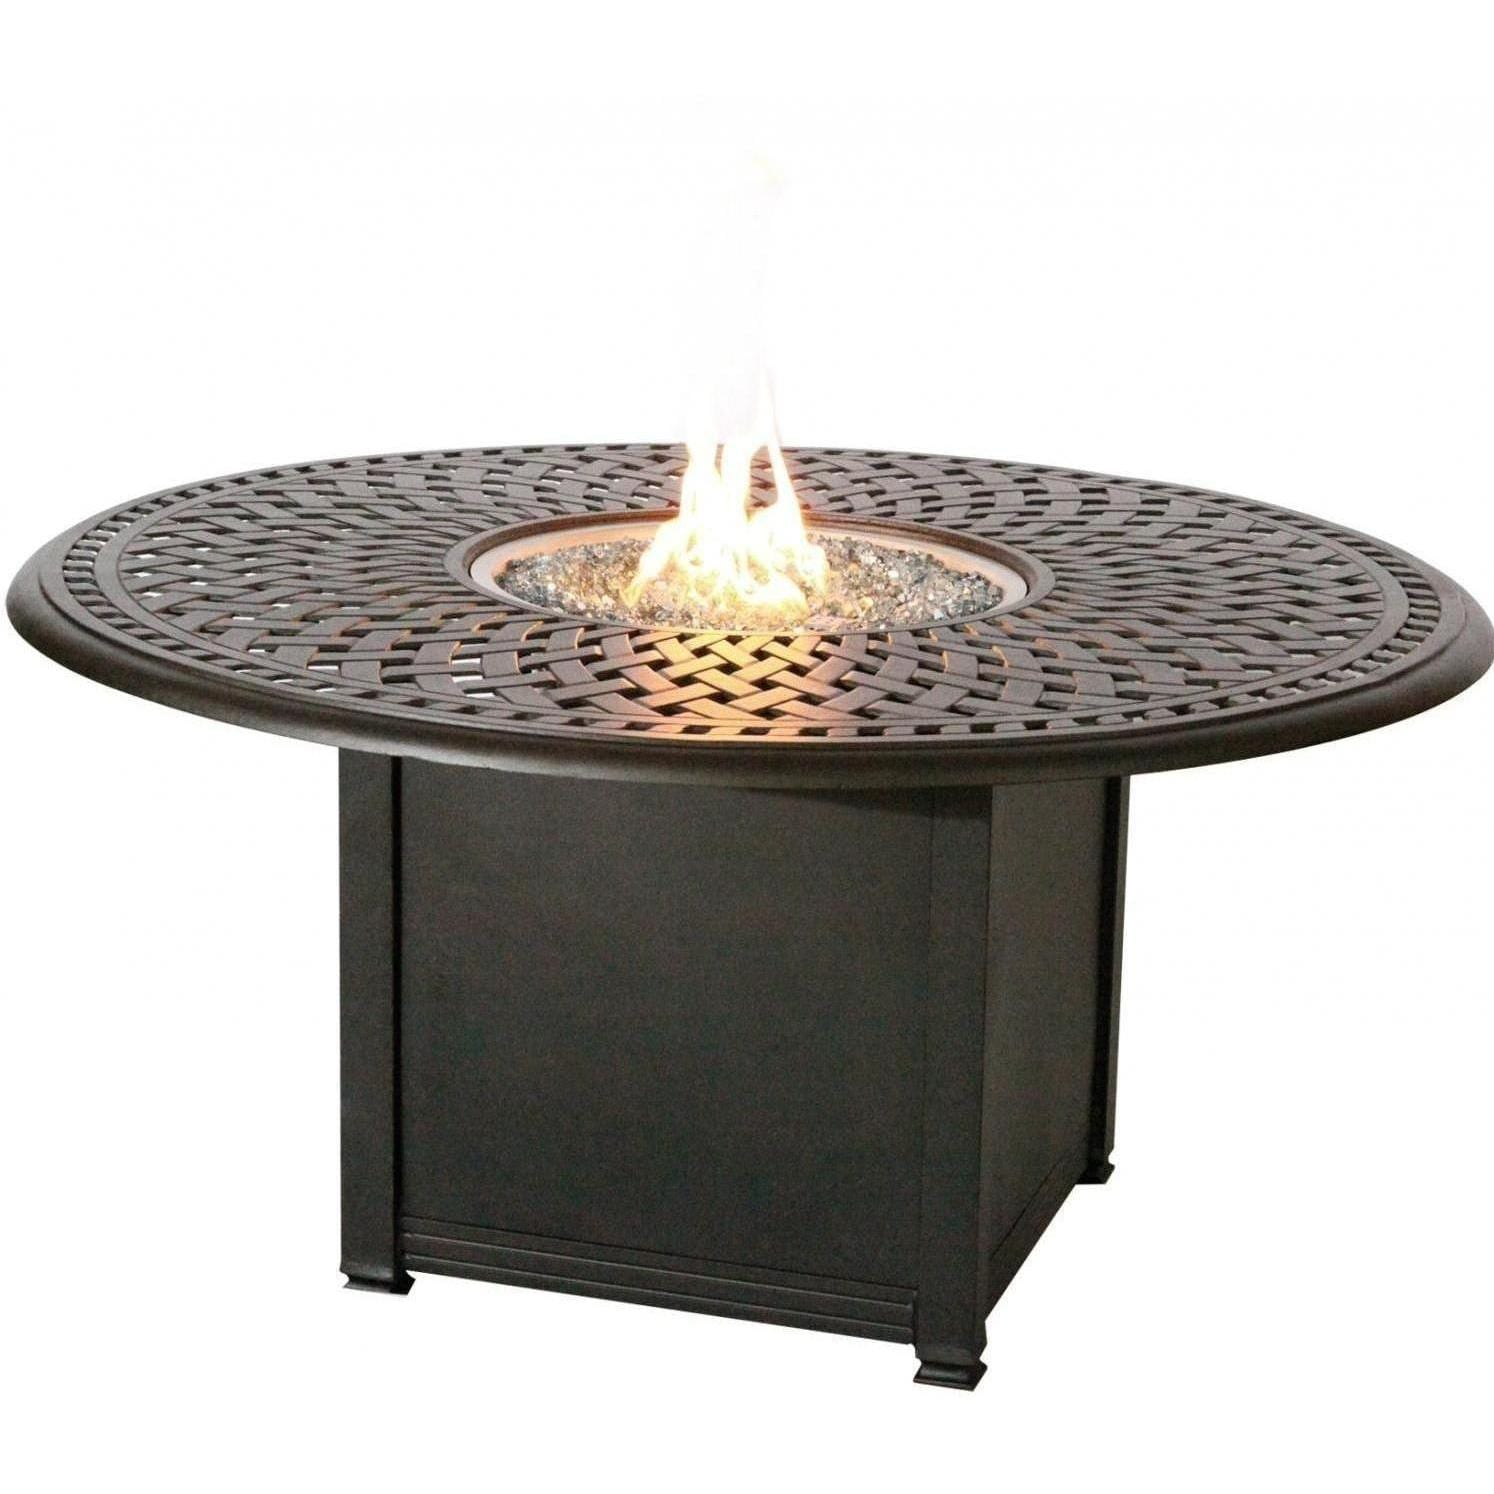 Darlee Elisabeth Piece Fire Pit Dining Set Cast Aluminum - Cast aluminum gas fire pit table